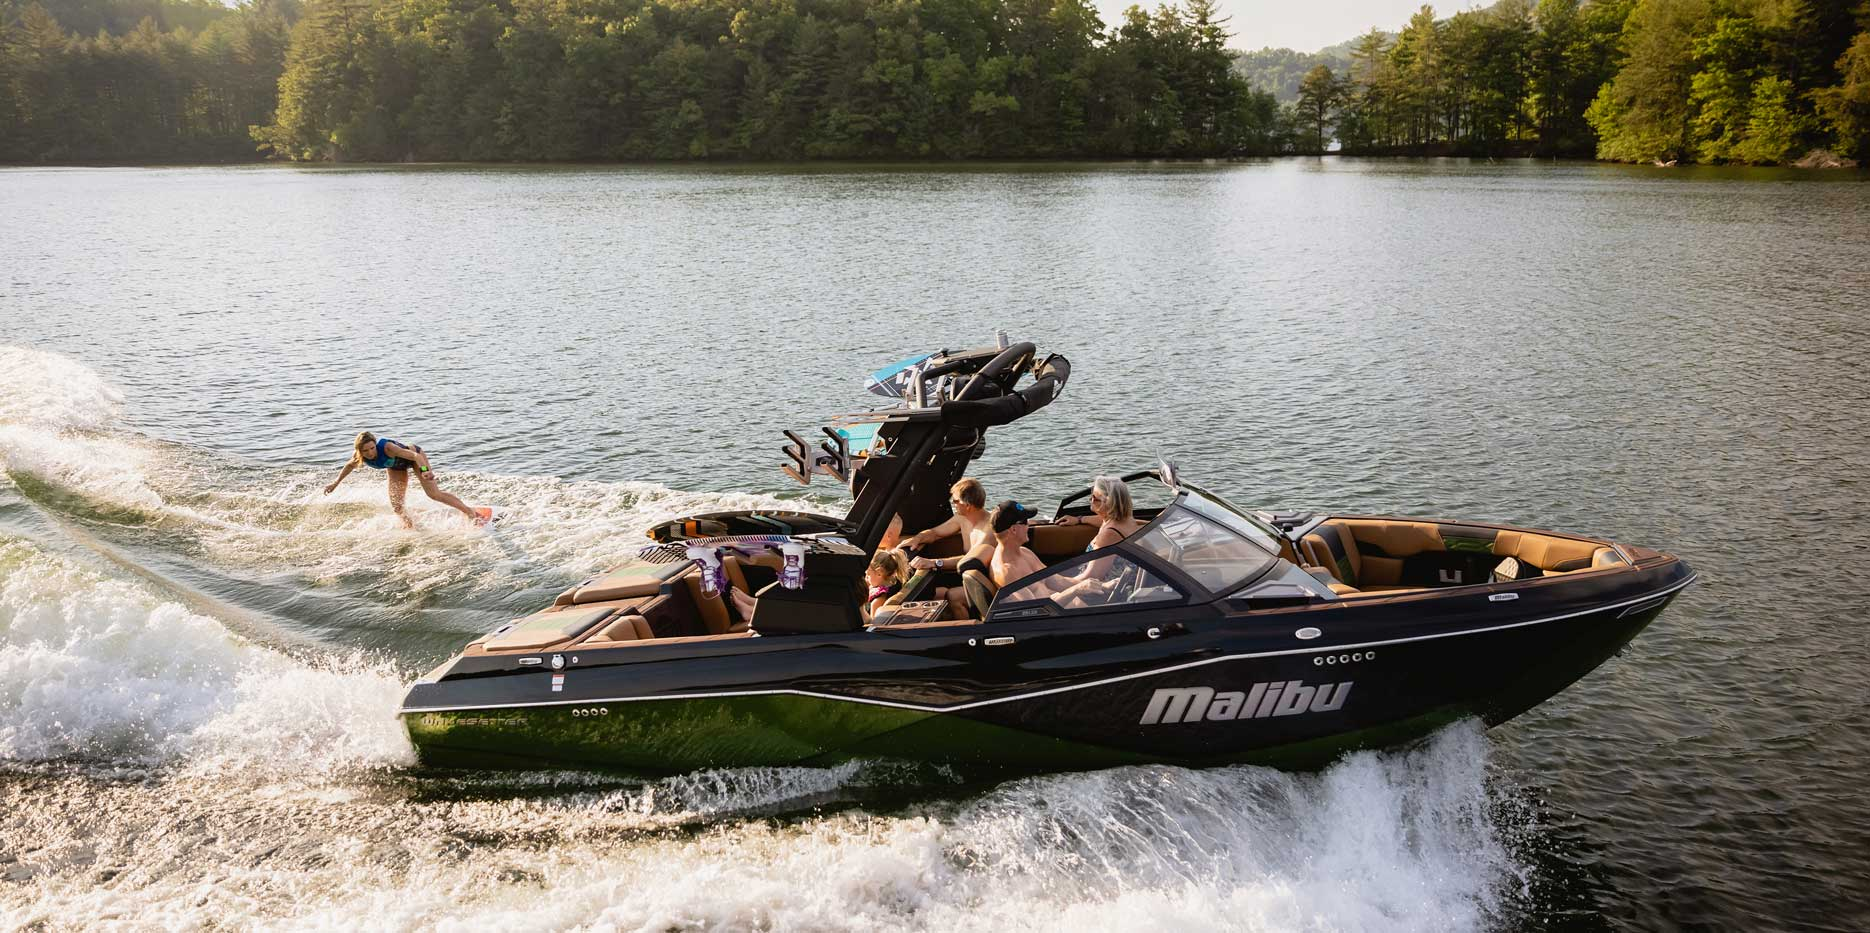 25 LSV on the water